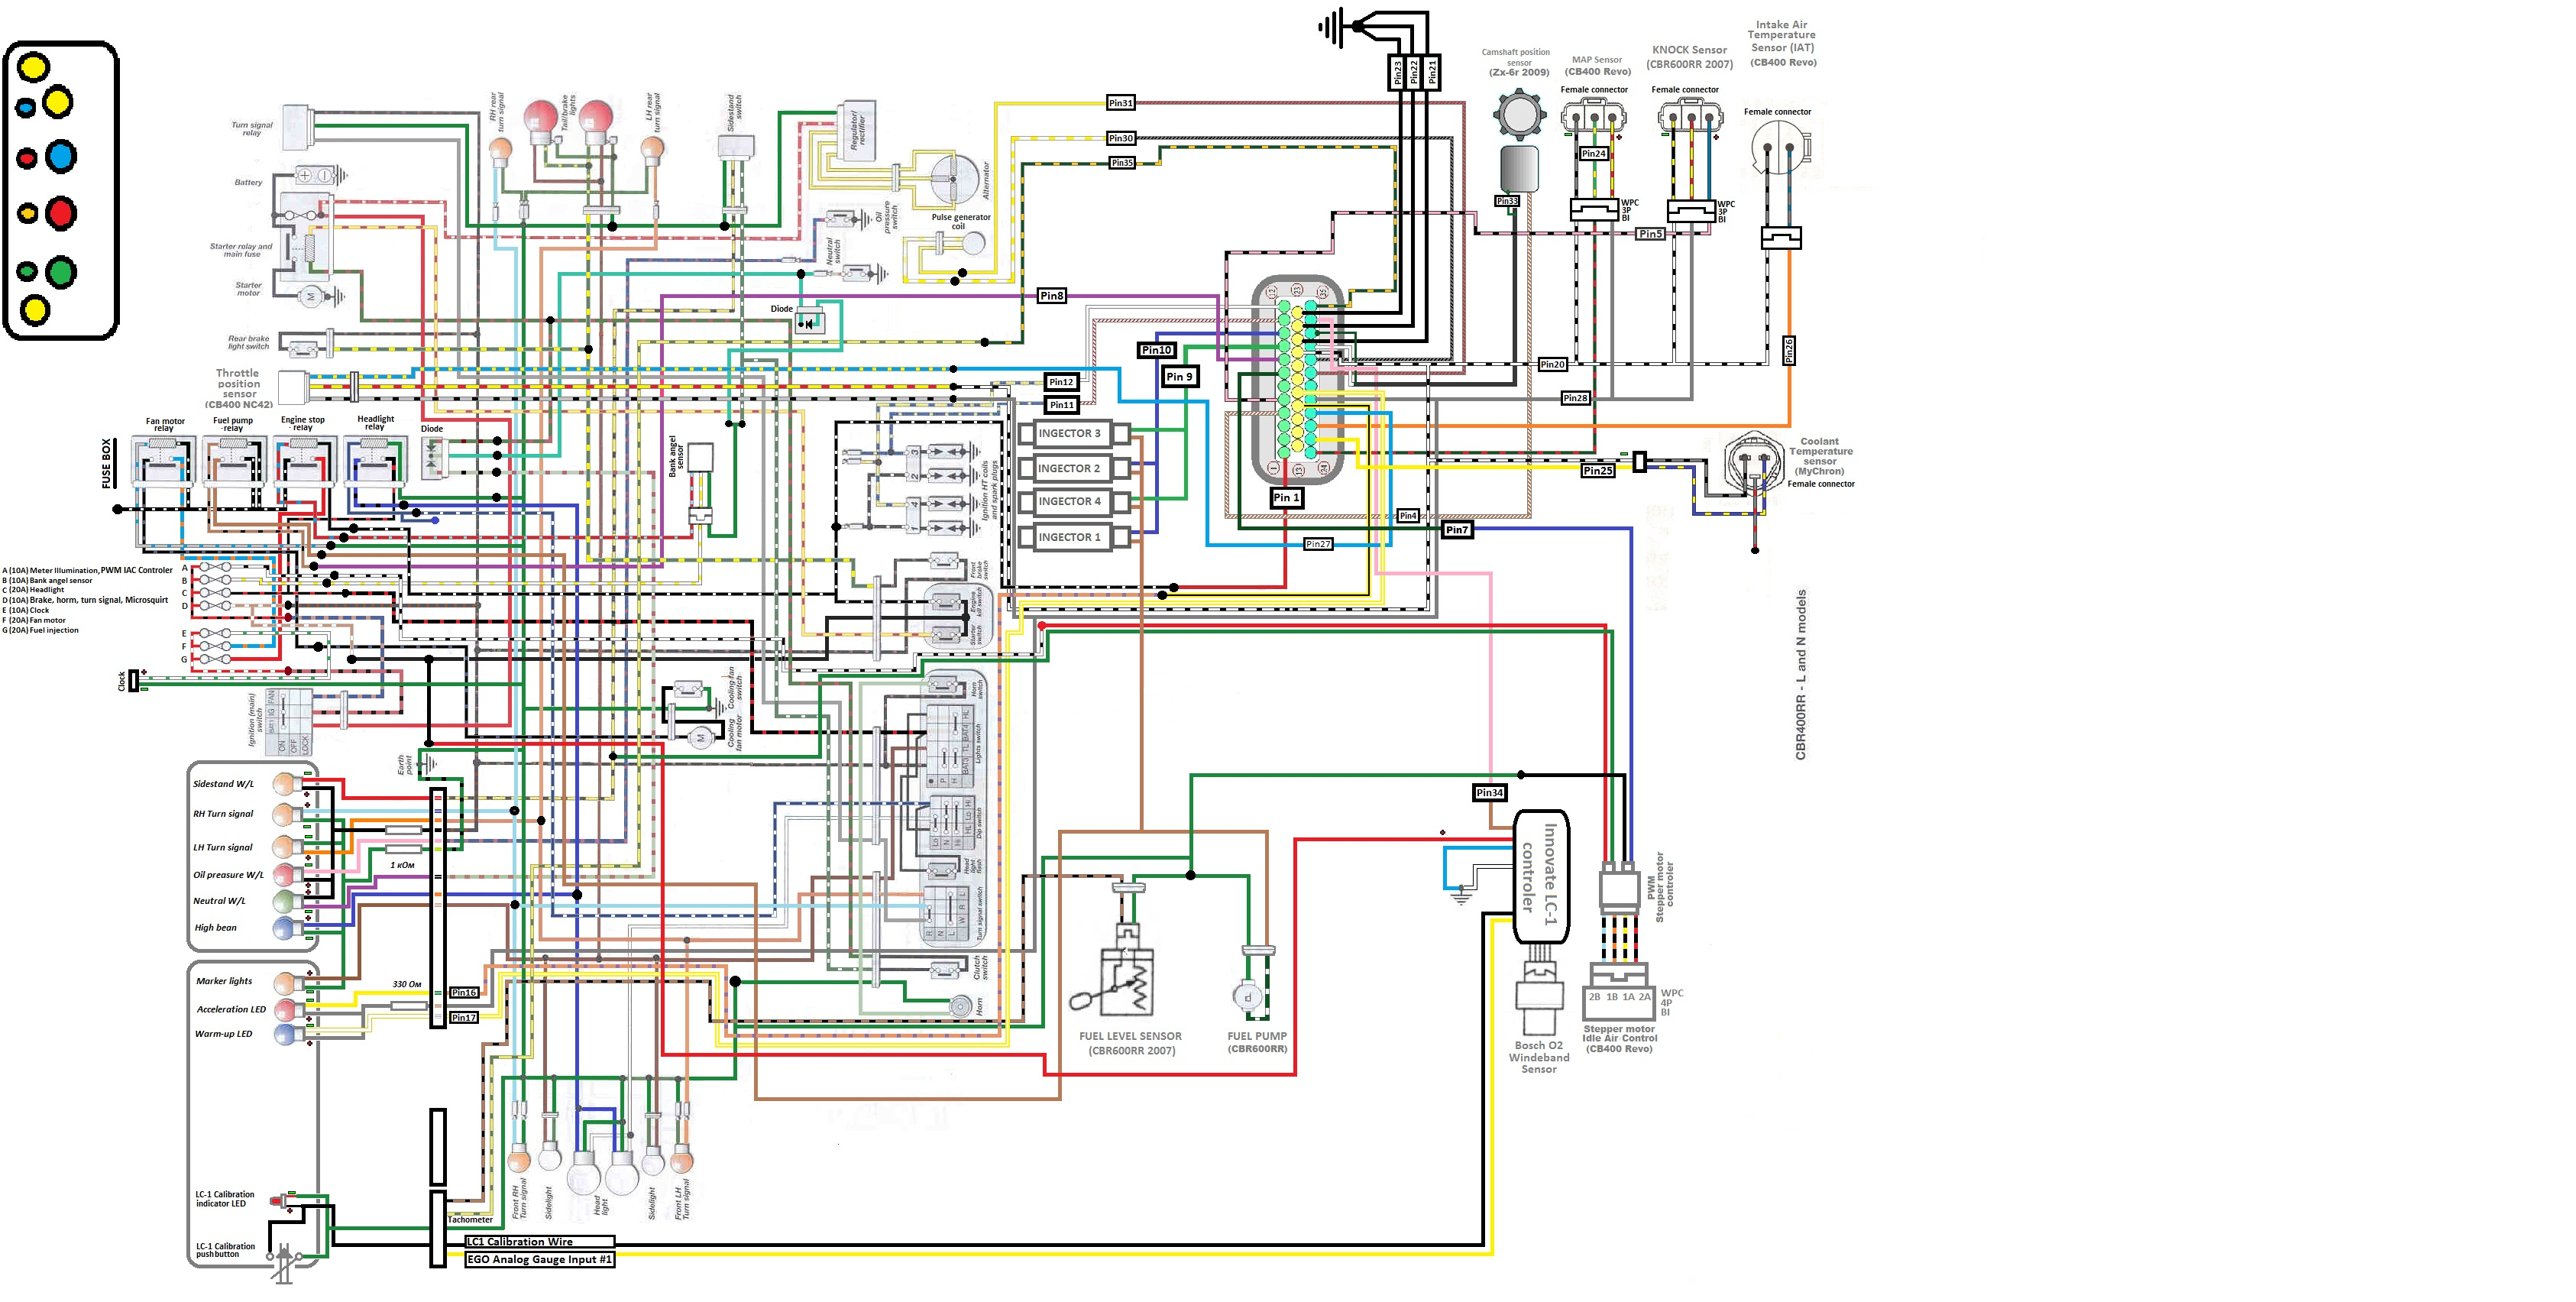 CBR400RR_NC29_Microsquirt_wiring_loom motorcycle wiring diagrams zzr 400 wiring diagram at bayanpartner.co